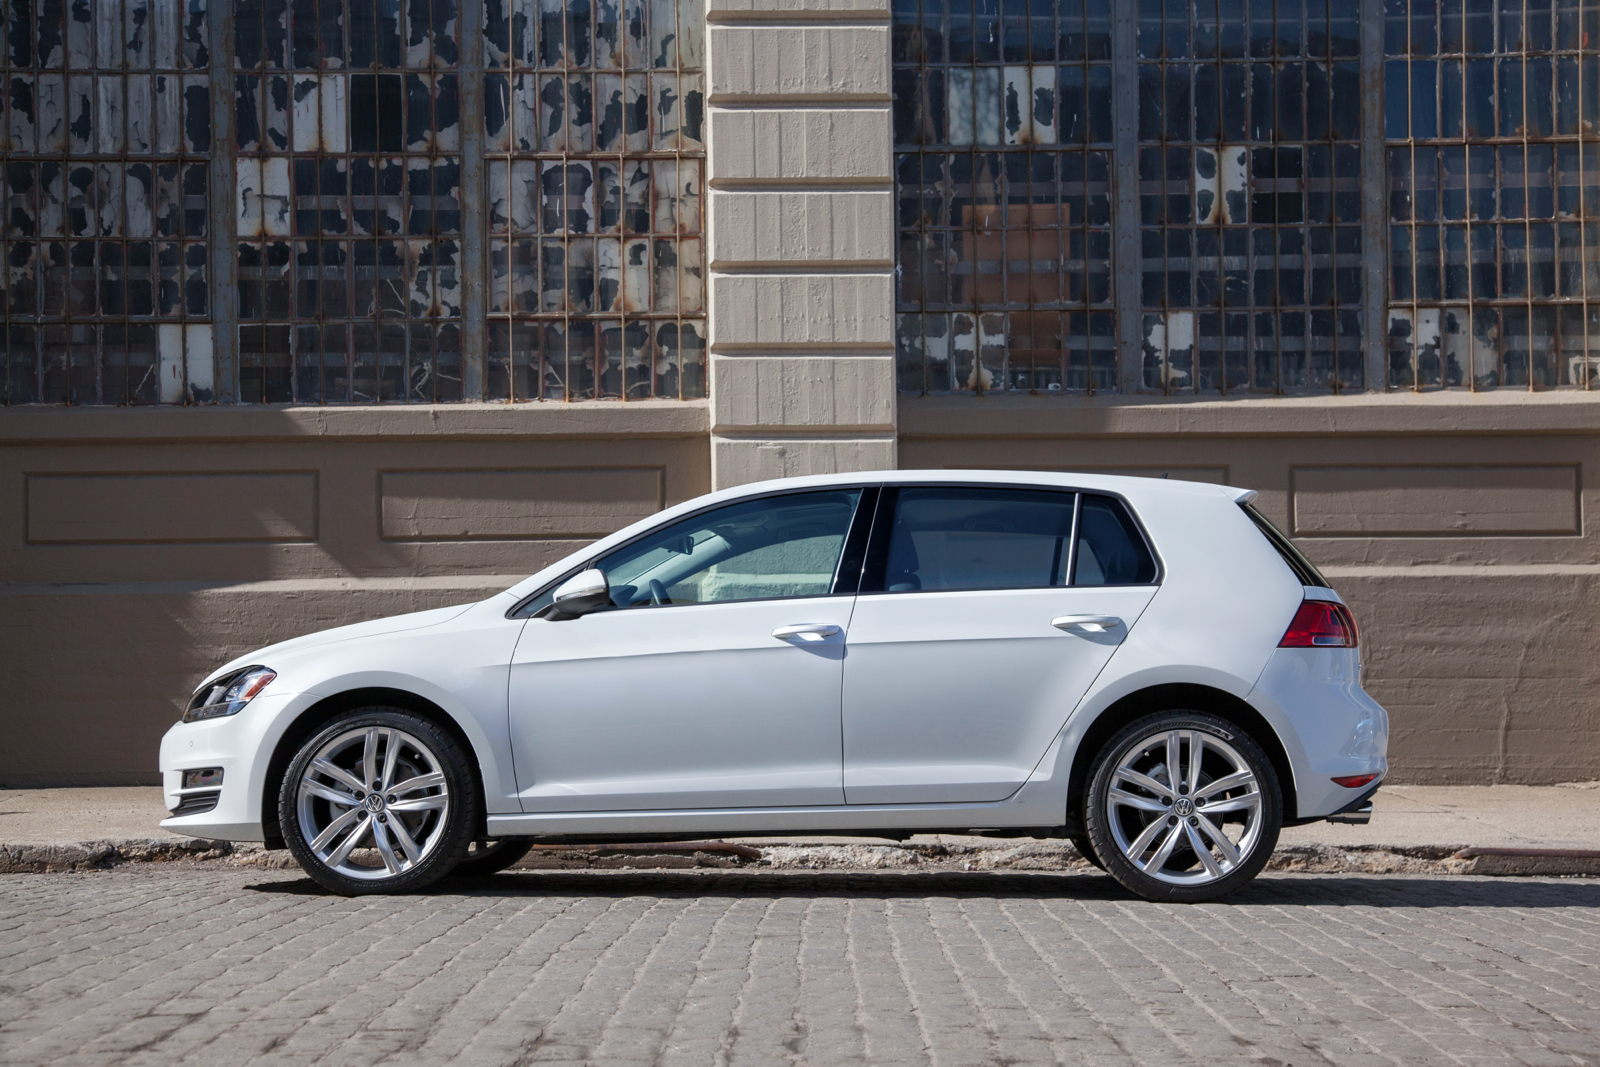 Kia Of Columbus >> 2015 Volkswagen Golf (VW) Review, Ratings, Specs, Prices, and Photos - The Car Connection